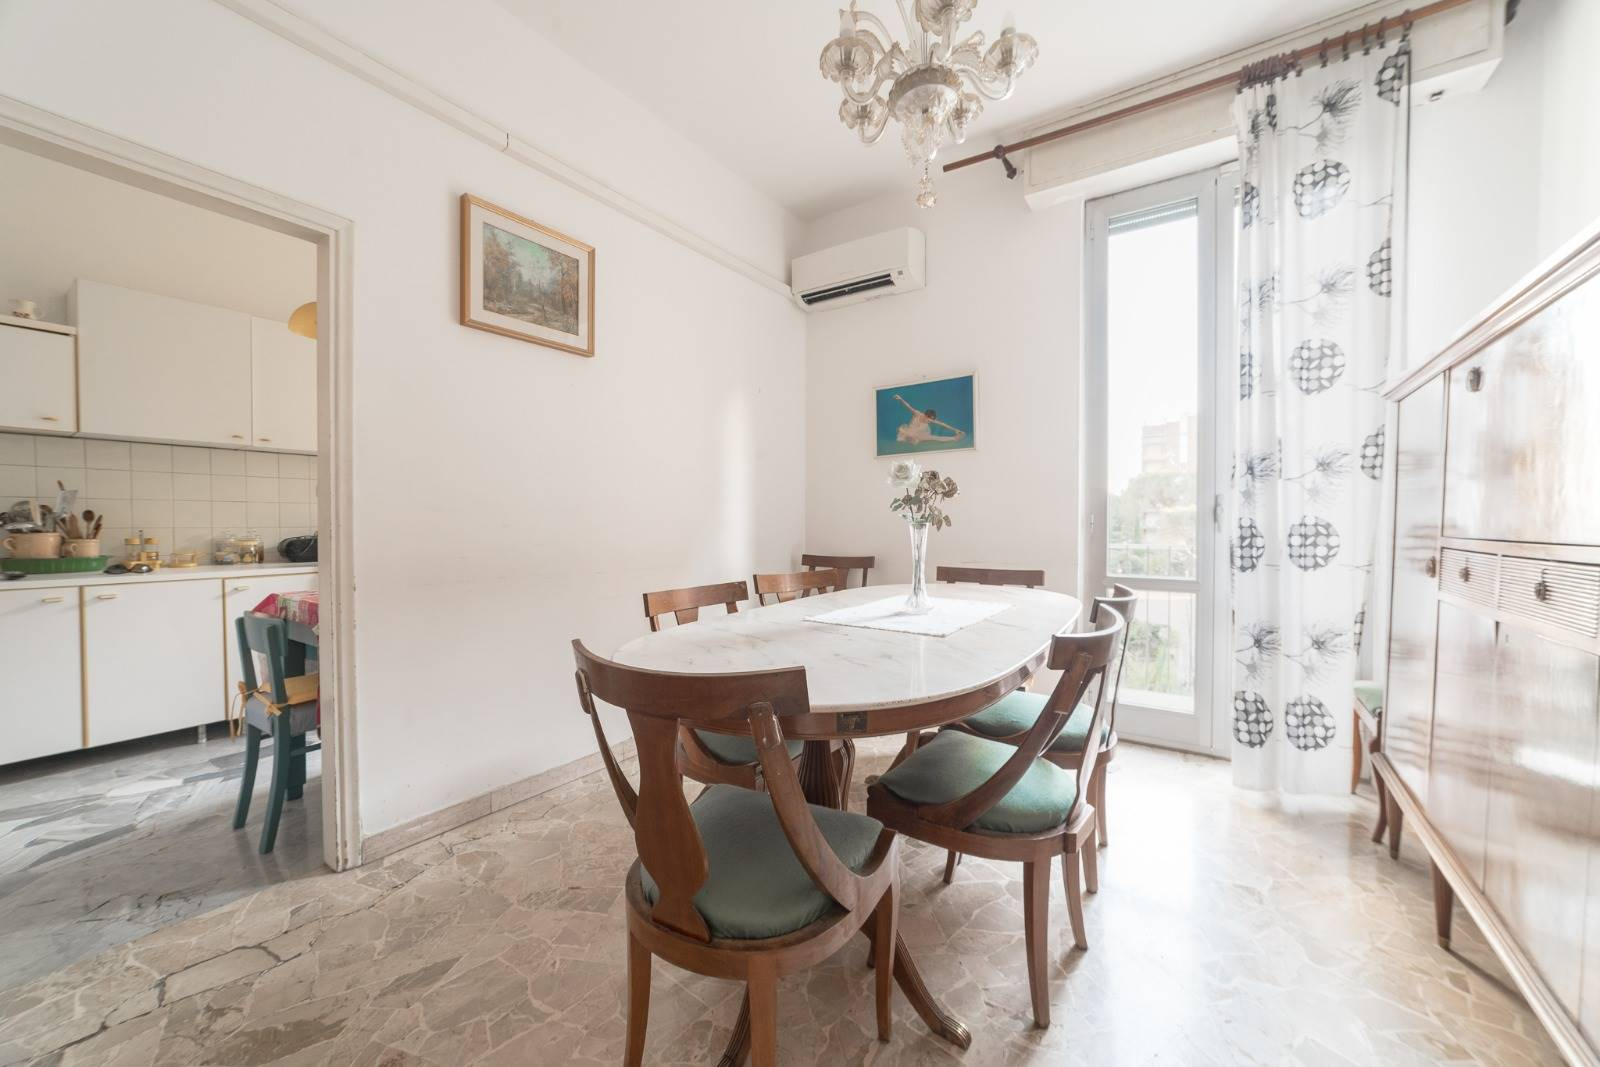 NOVOLI, FIRENZE, Apartment for sale of 105 Sq. mt., Excellent Condition, Heating Centralized, placed at 2° on 5, composed by: 5 Rooms, Little kitchen,